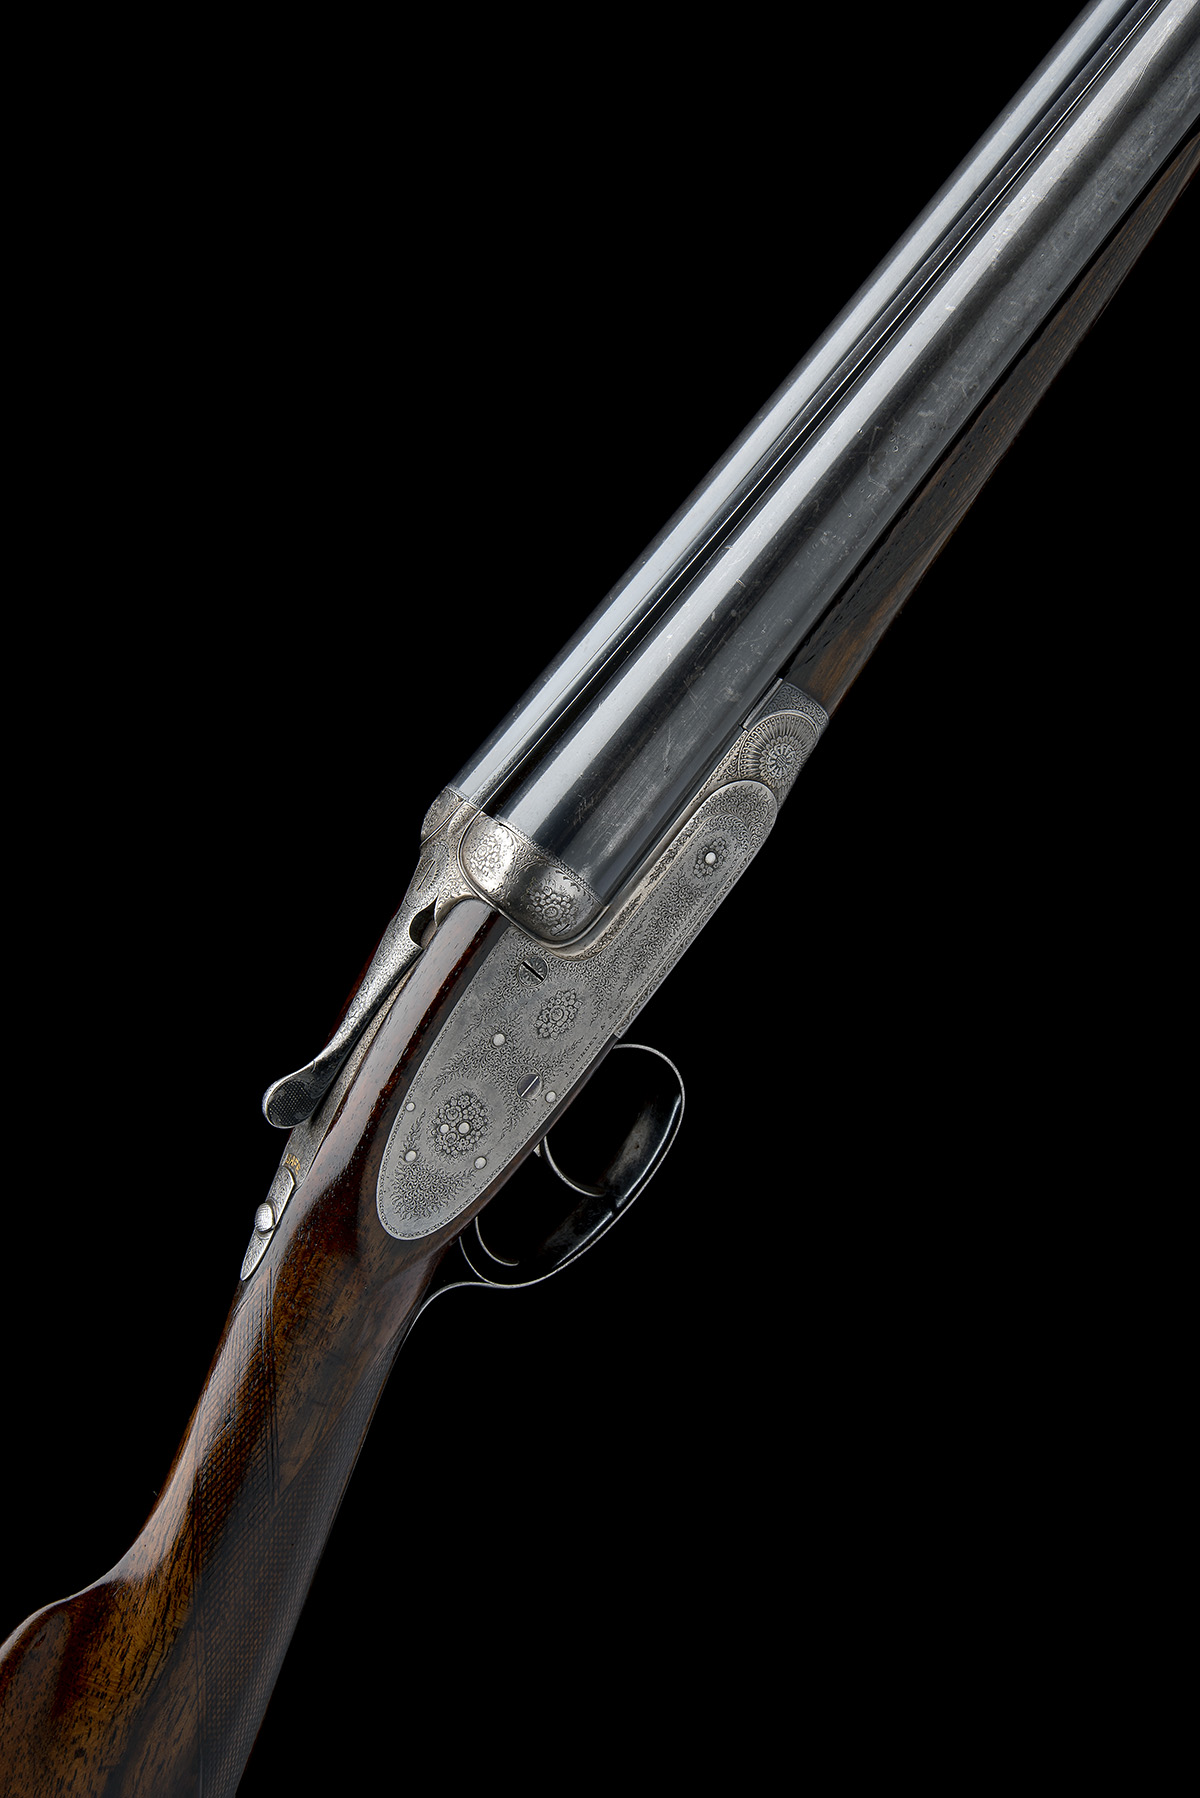 J. PURDEY & SONS A LIGHTWEIGHT 12-BORE ROUNDED-BAR SELF-OPENING SIDELOCK EJECTOR, serial no.